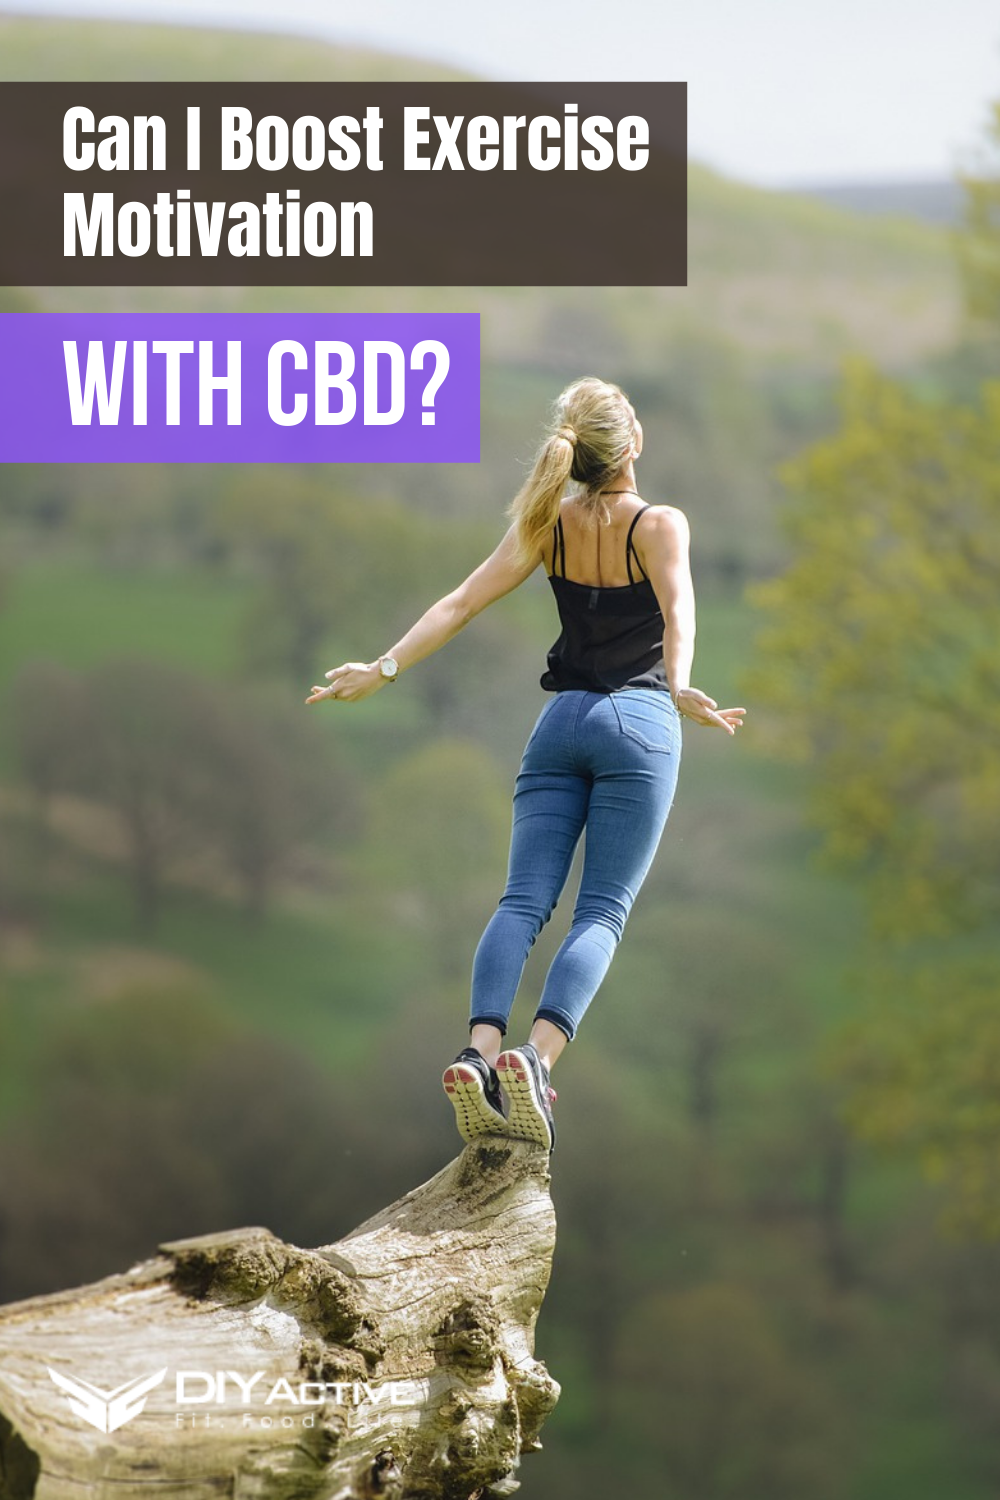 Can I Boost Exercise Motivation and Results With CBD?